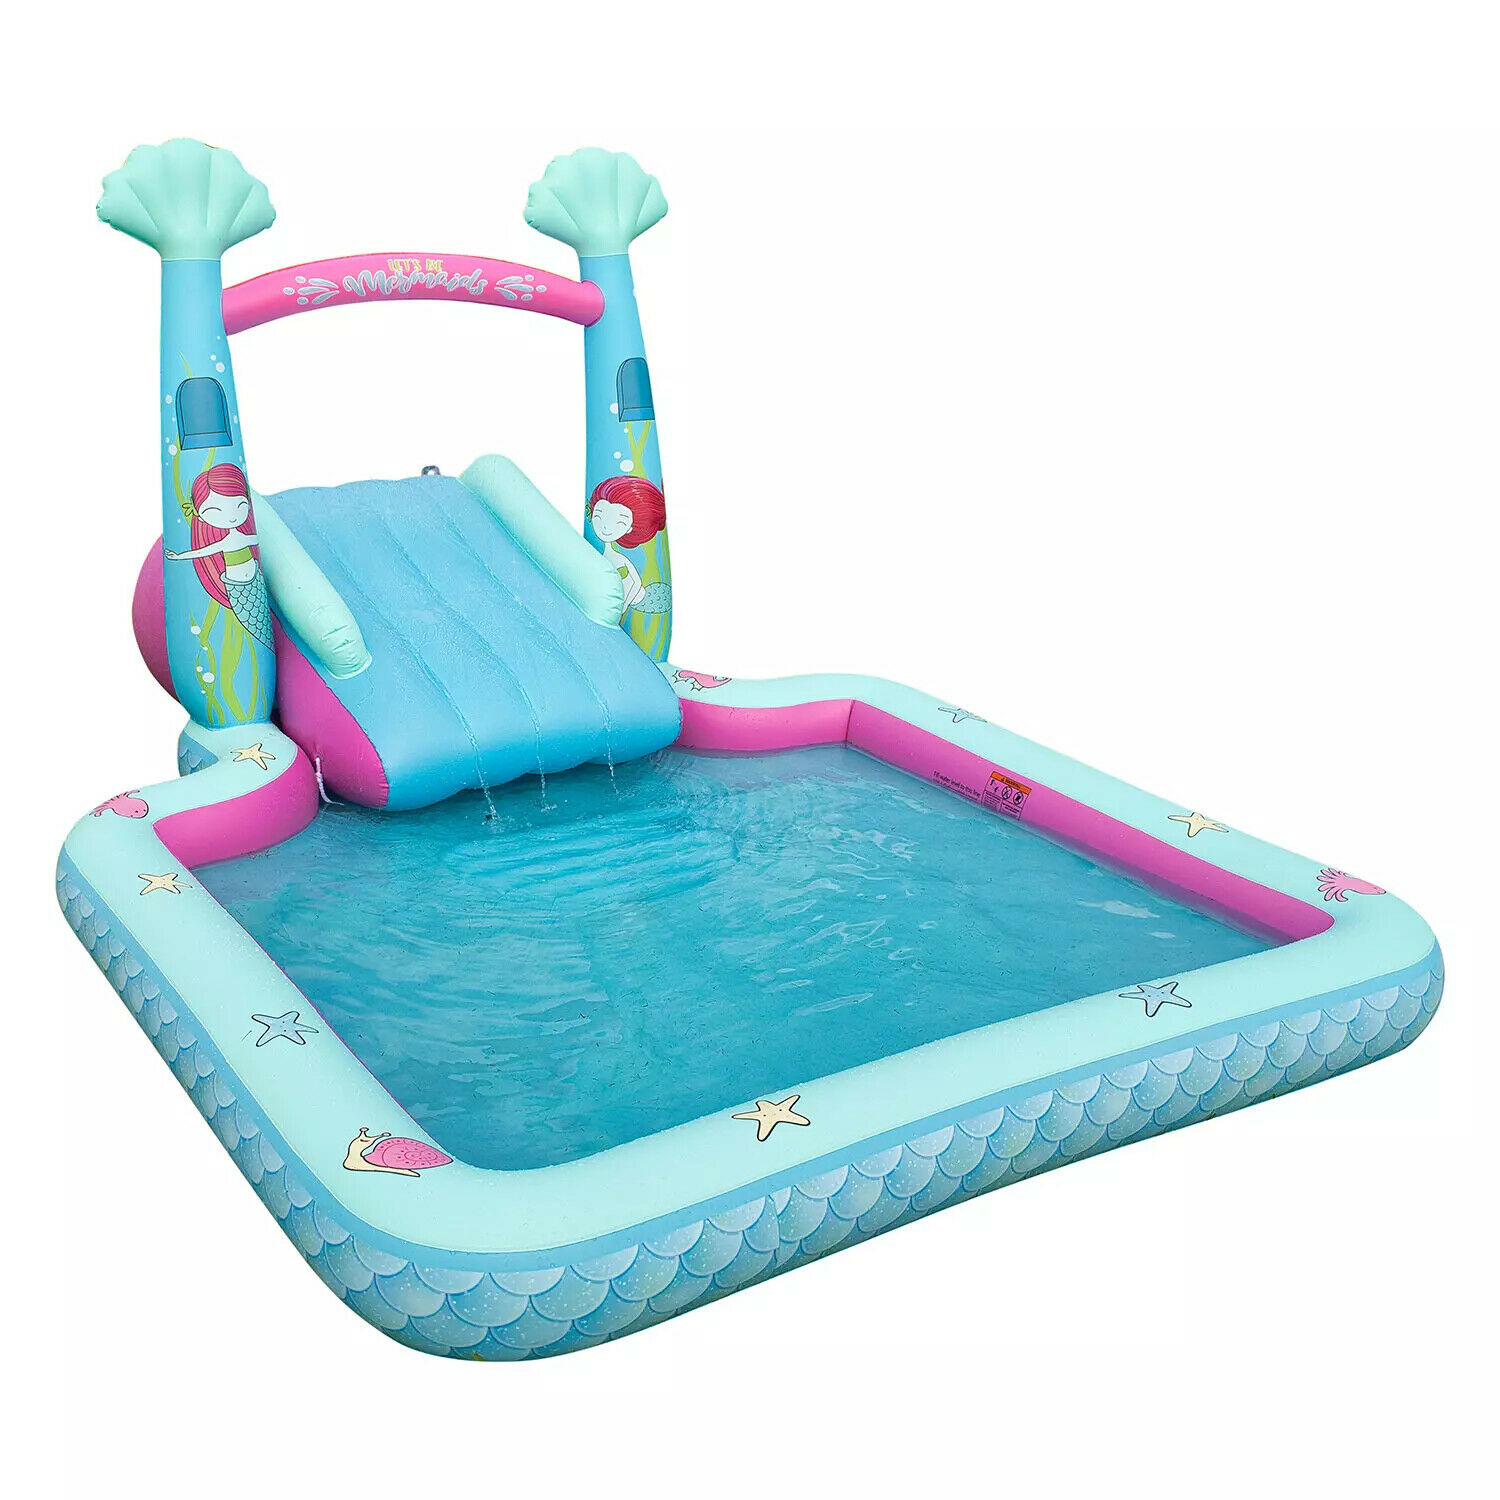 Kid's Mermaid Themed Novelty Pool With A Two-Step Slide & Water Spray Arch